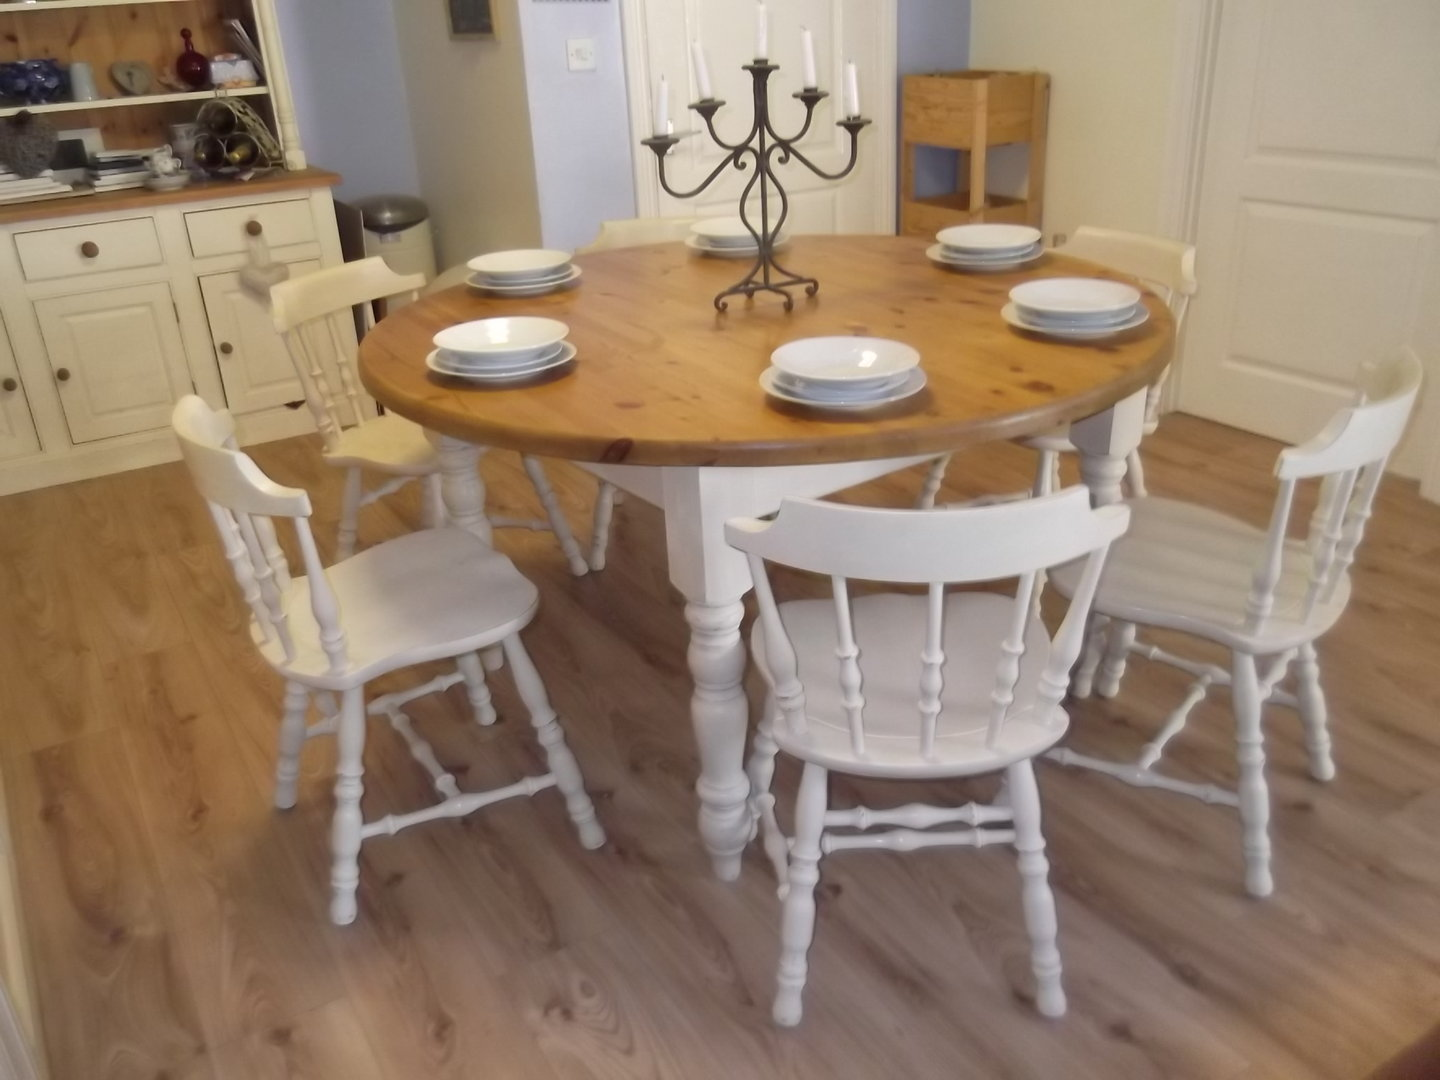 Vintage Large round Farmhouse table and 6 Oak chairs  : D from moonstripe.org size 1440 x 1080 jpeg 156kB